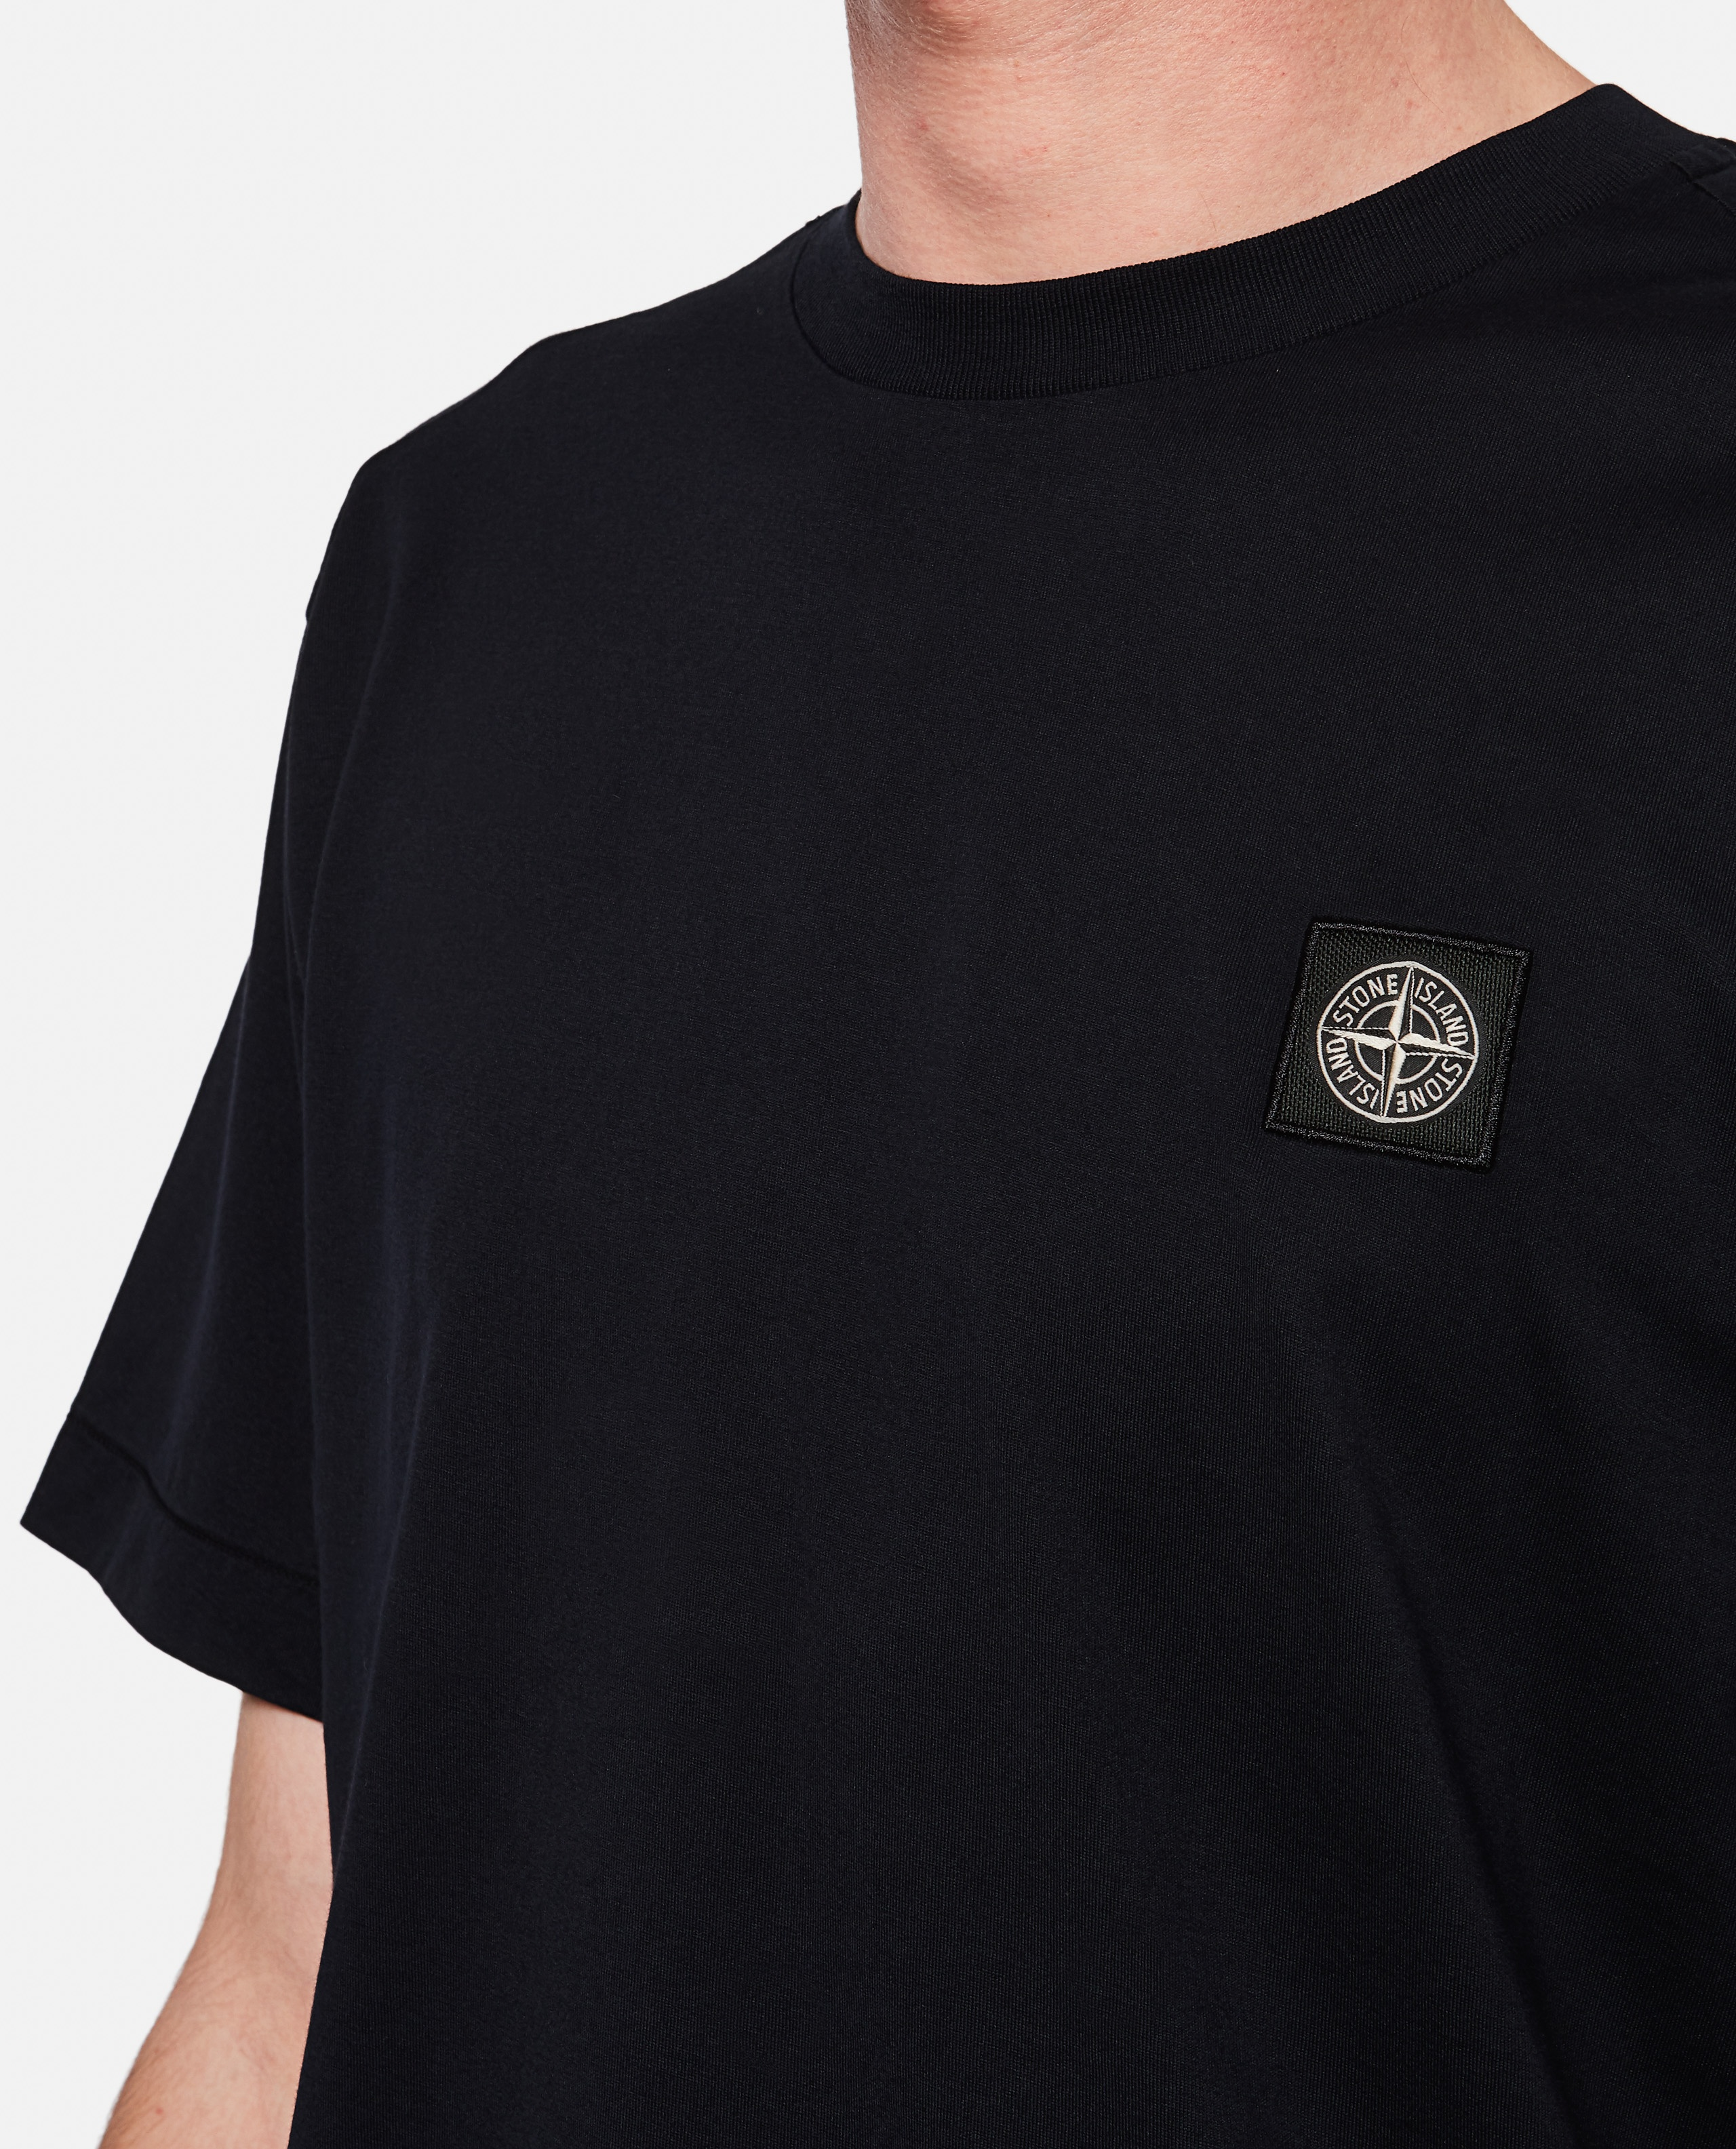 Cotton jersey T-shirt Men Stone Island 000270990039920 4